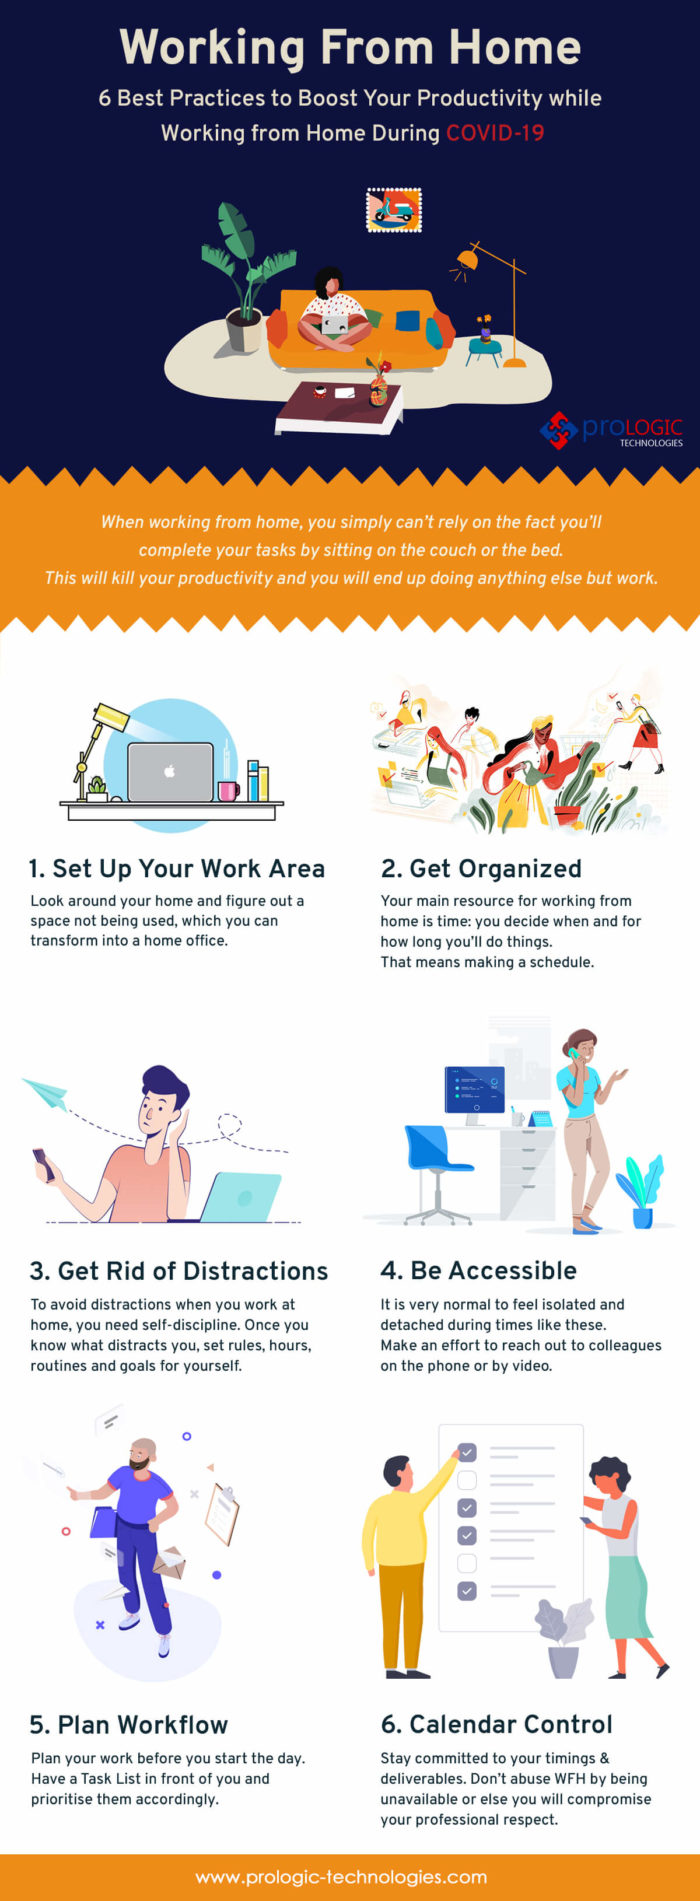 6 Best Practices to Boost Your Productivity while Working from Home During COVID-19